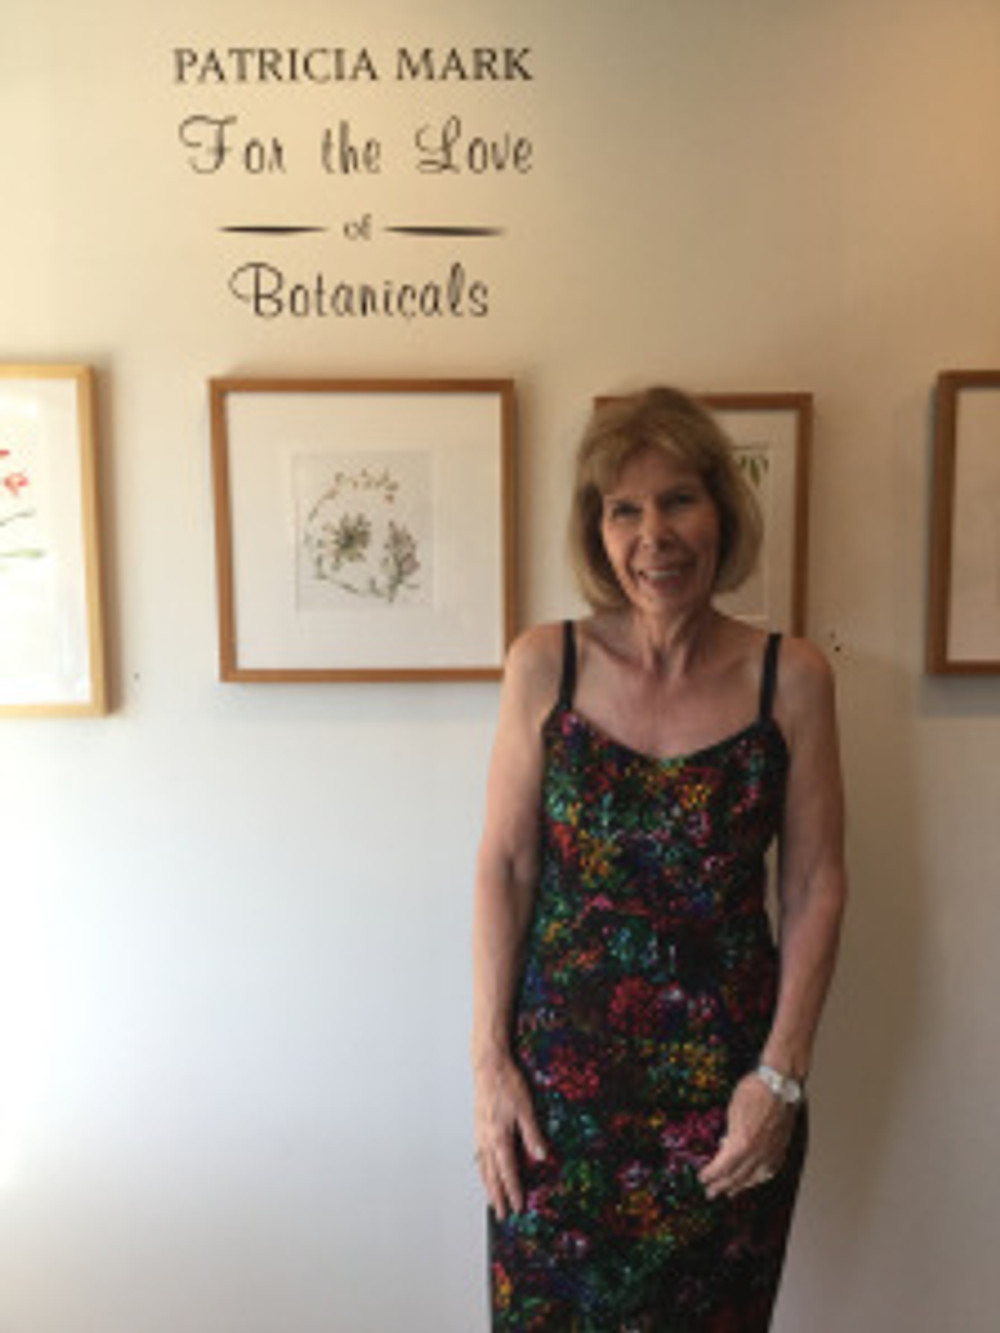 """Patricia Mark at the opening reception """"For the Love of Botanicals."""" Photo credit: Tania Marien, © 2016."""